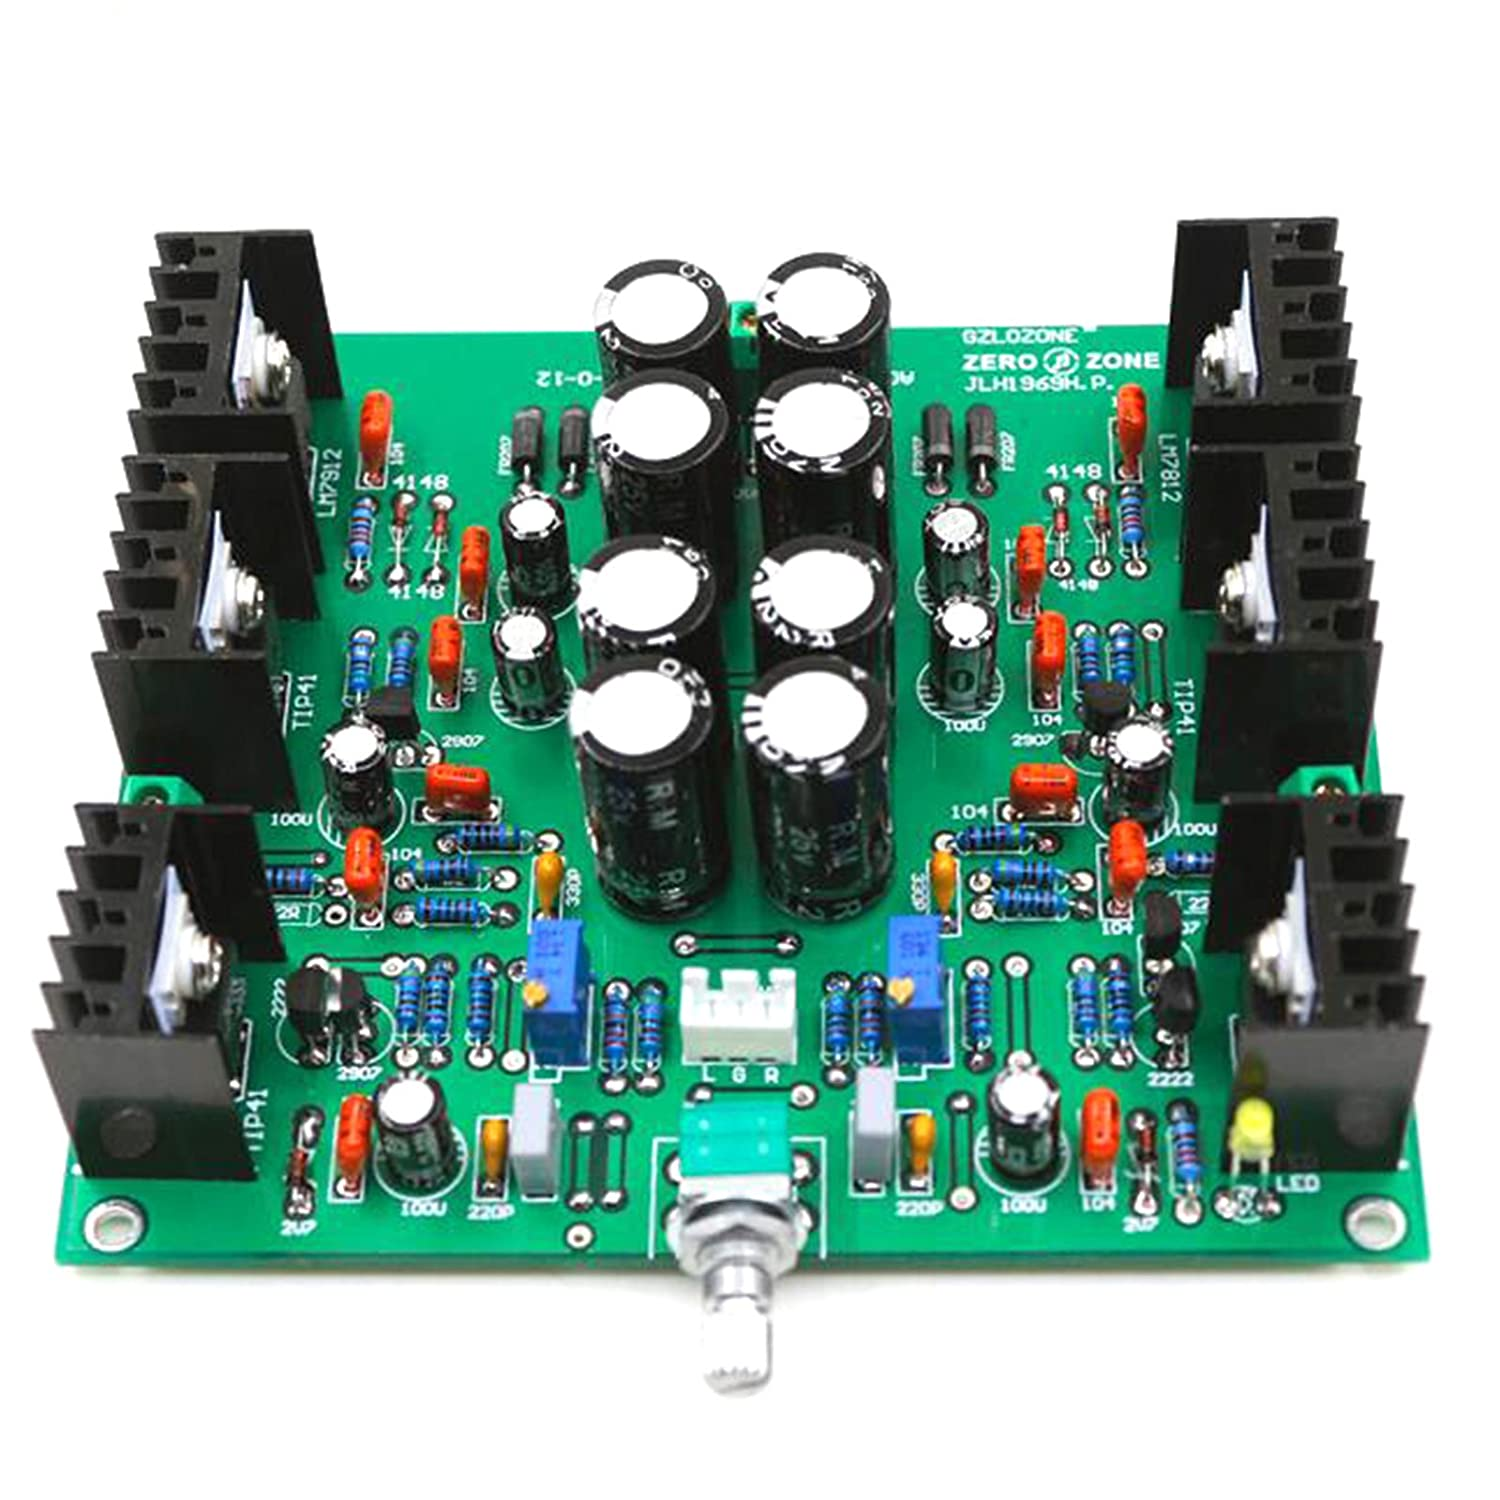 New Jlh Hood1969 Class A Headphone Amplifier Finished Lm7812 Lm7912 Circuit Board Preamplifier Musical Instruments